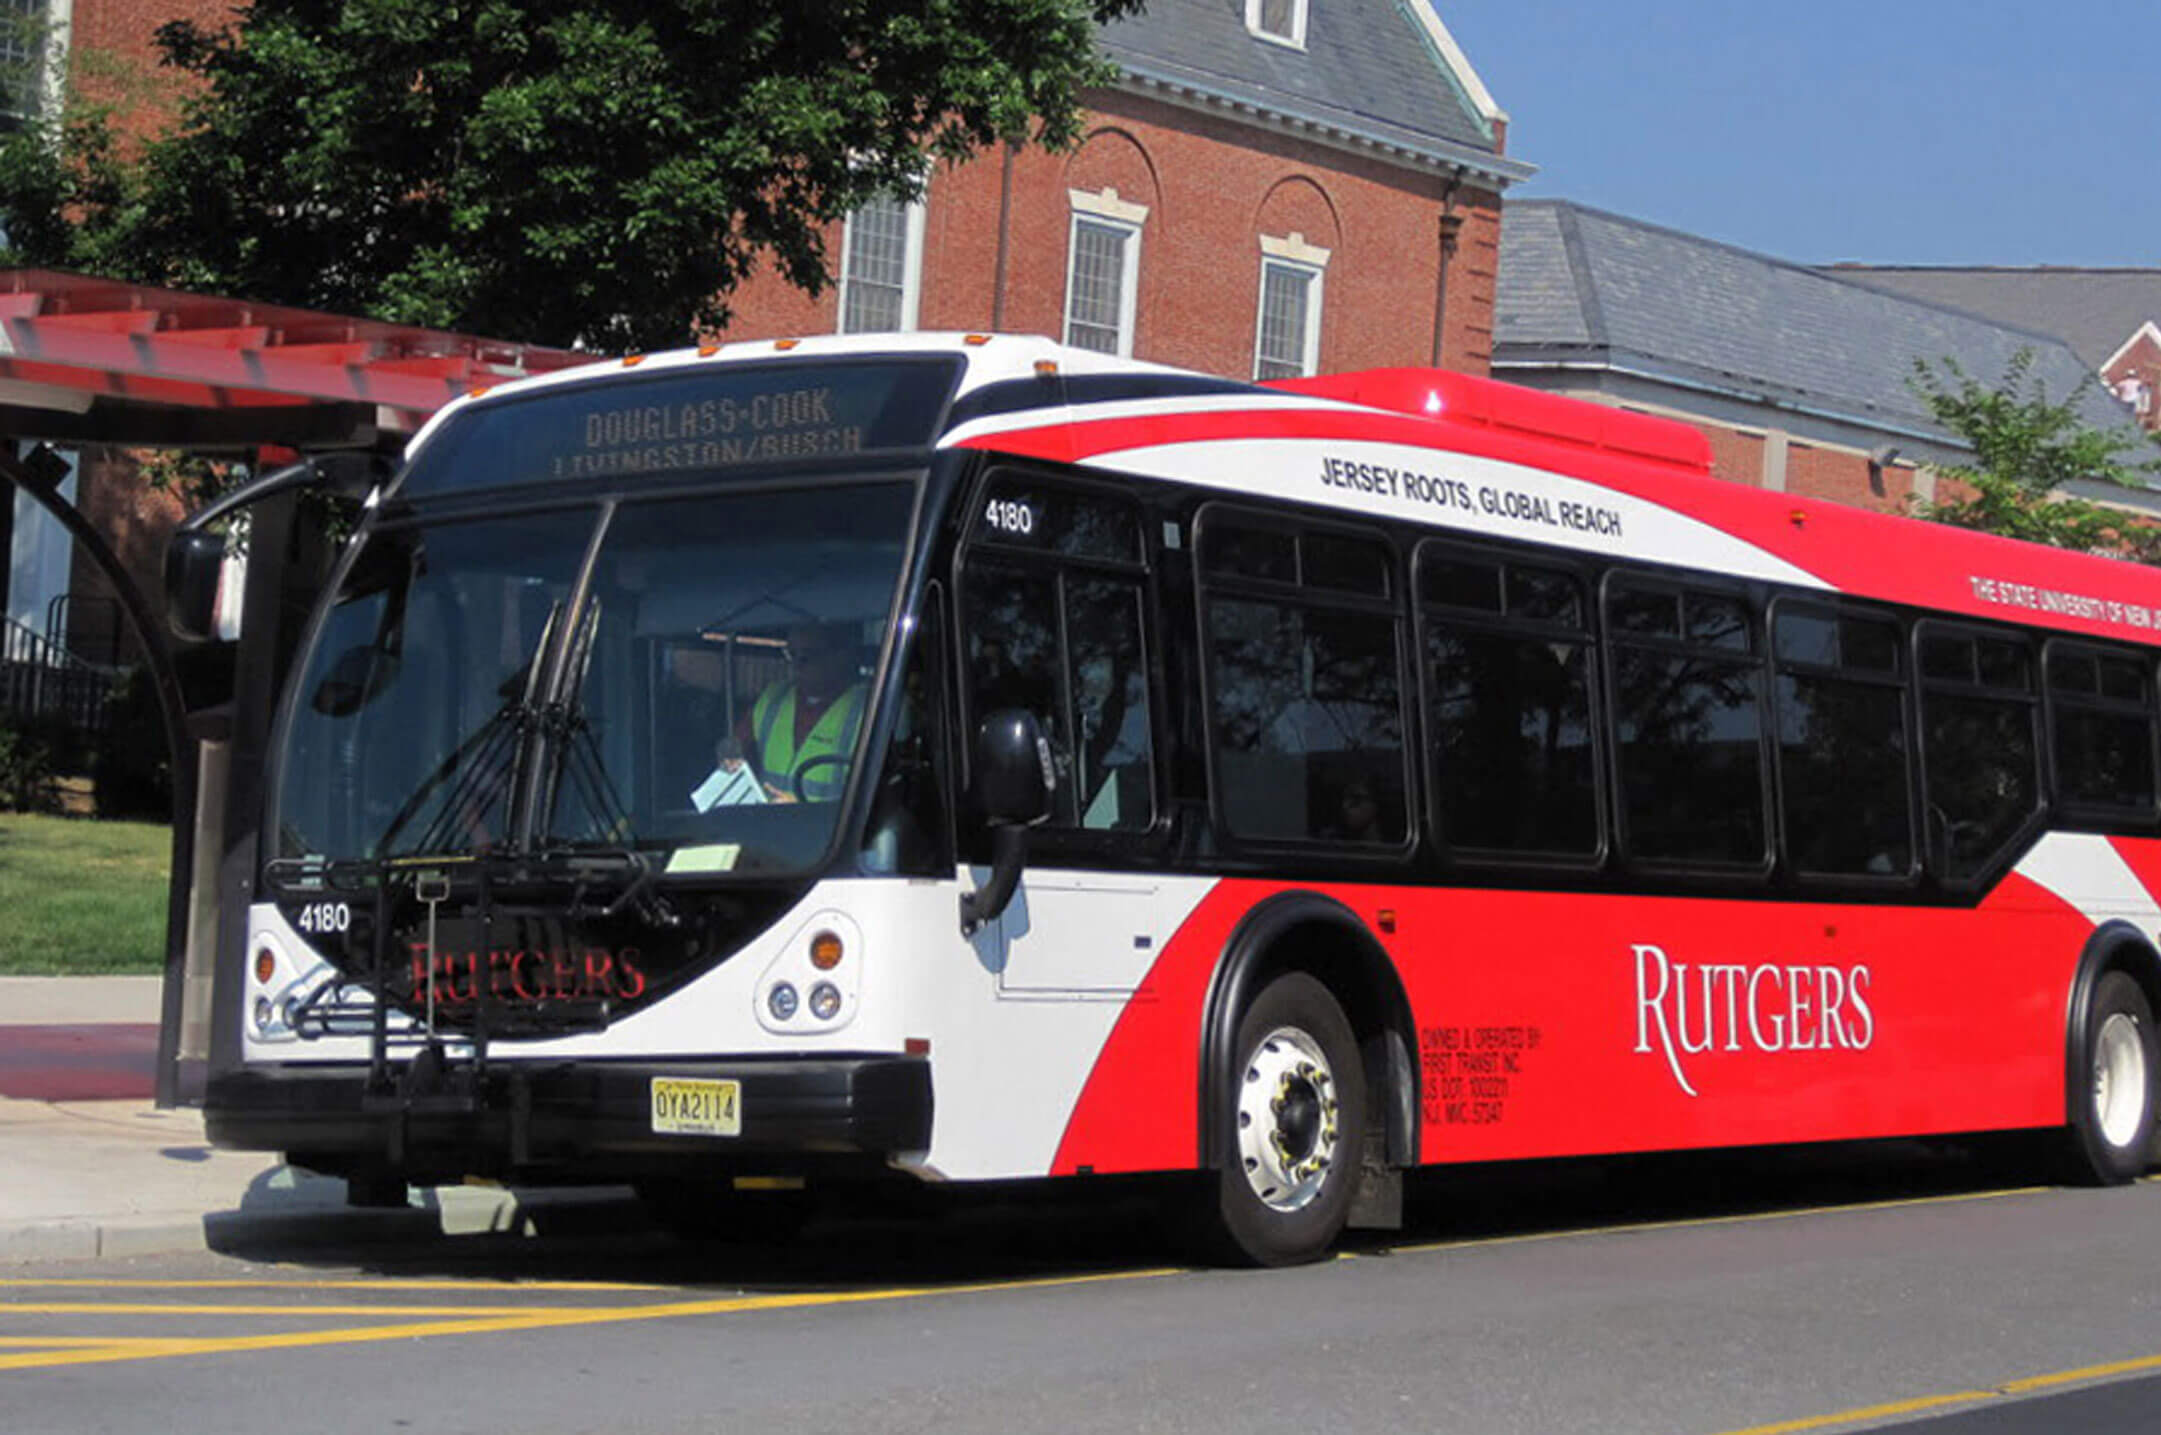 Rutgers bus at a stop on College Avenue